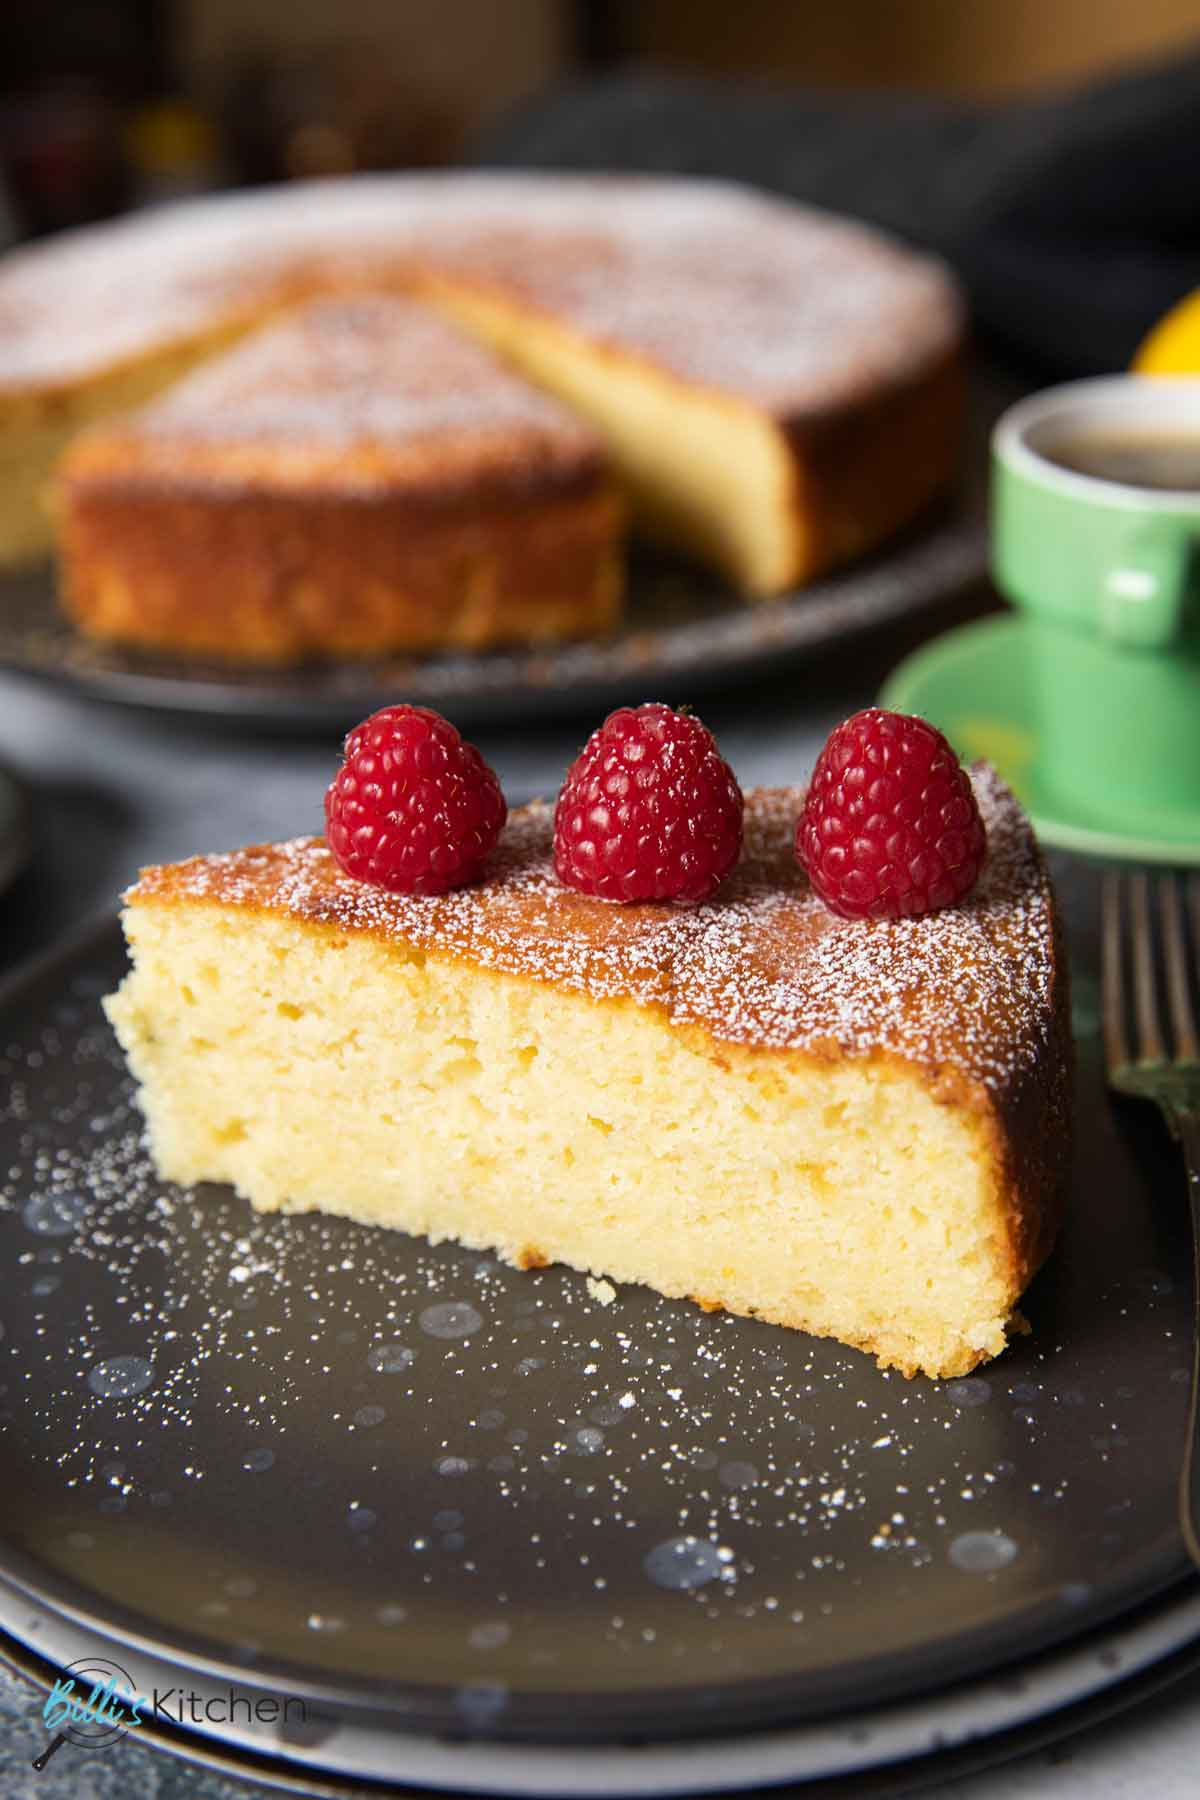 An image showing a slice of lemon ricotta cake served with fresh raspberries on top, and a cup of espresso.